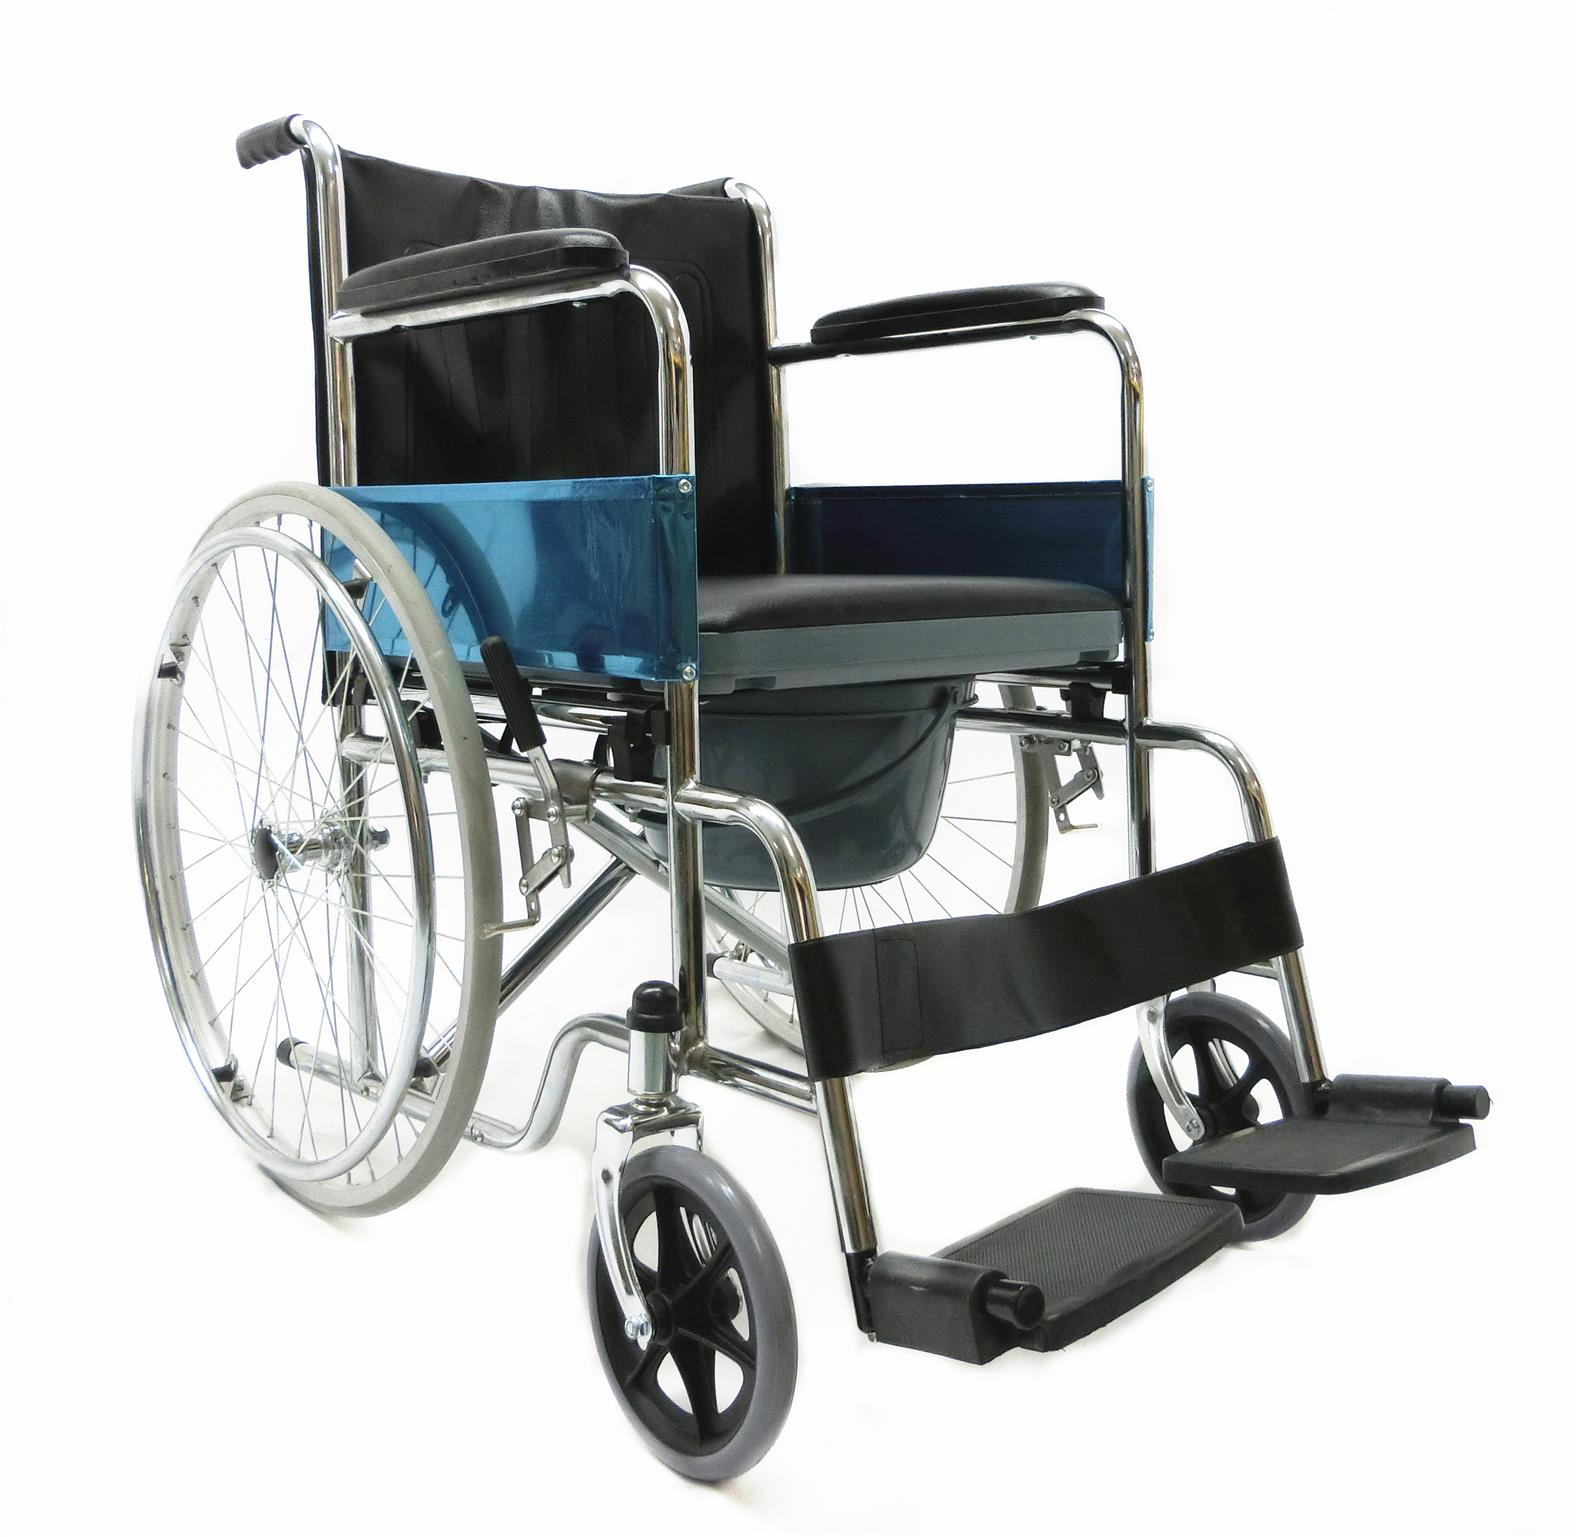 2 in 1 Commode chair Wheelchair kerusi roda ada tempat tandas